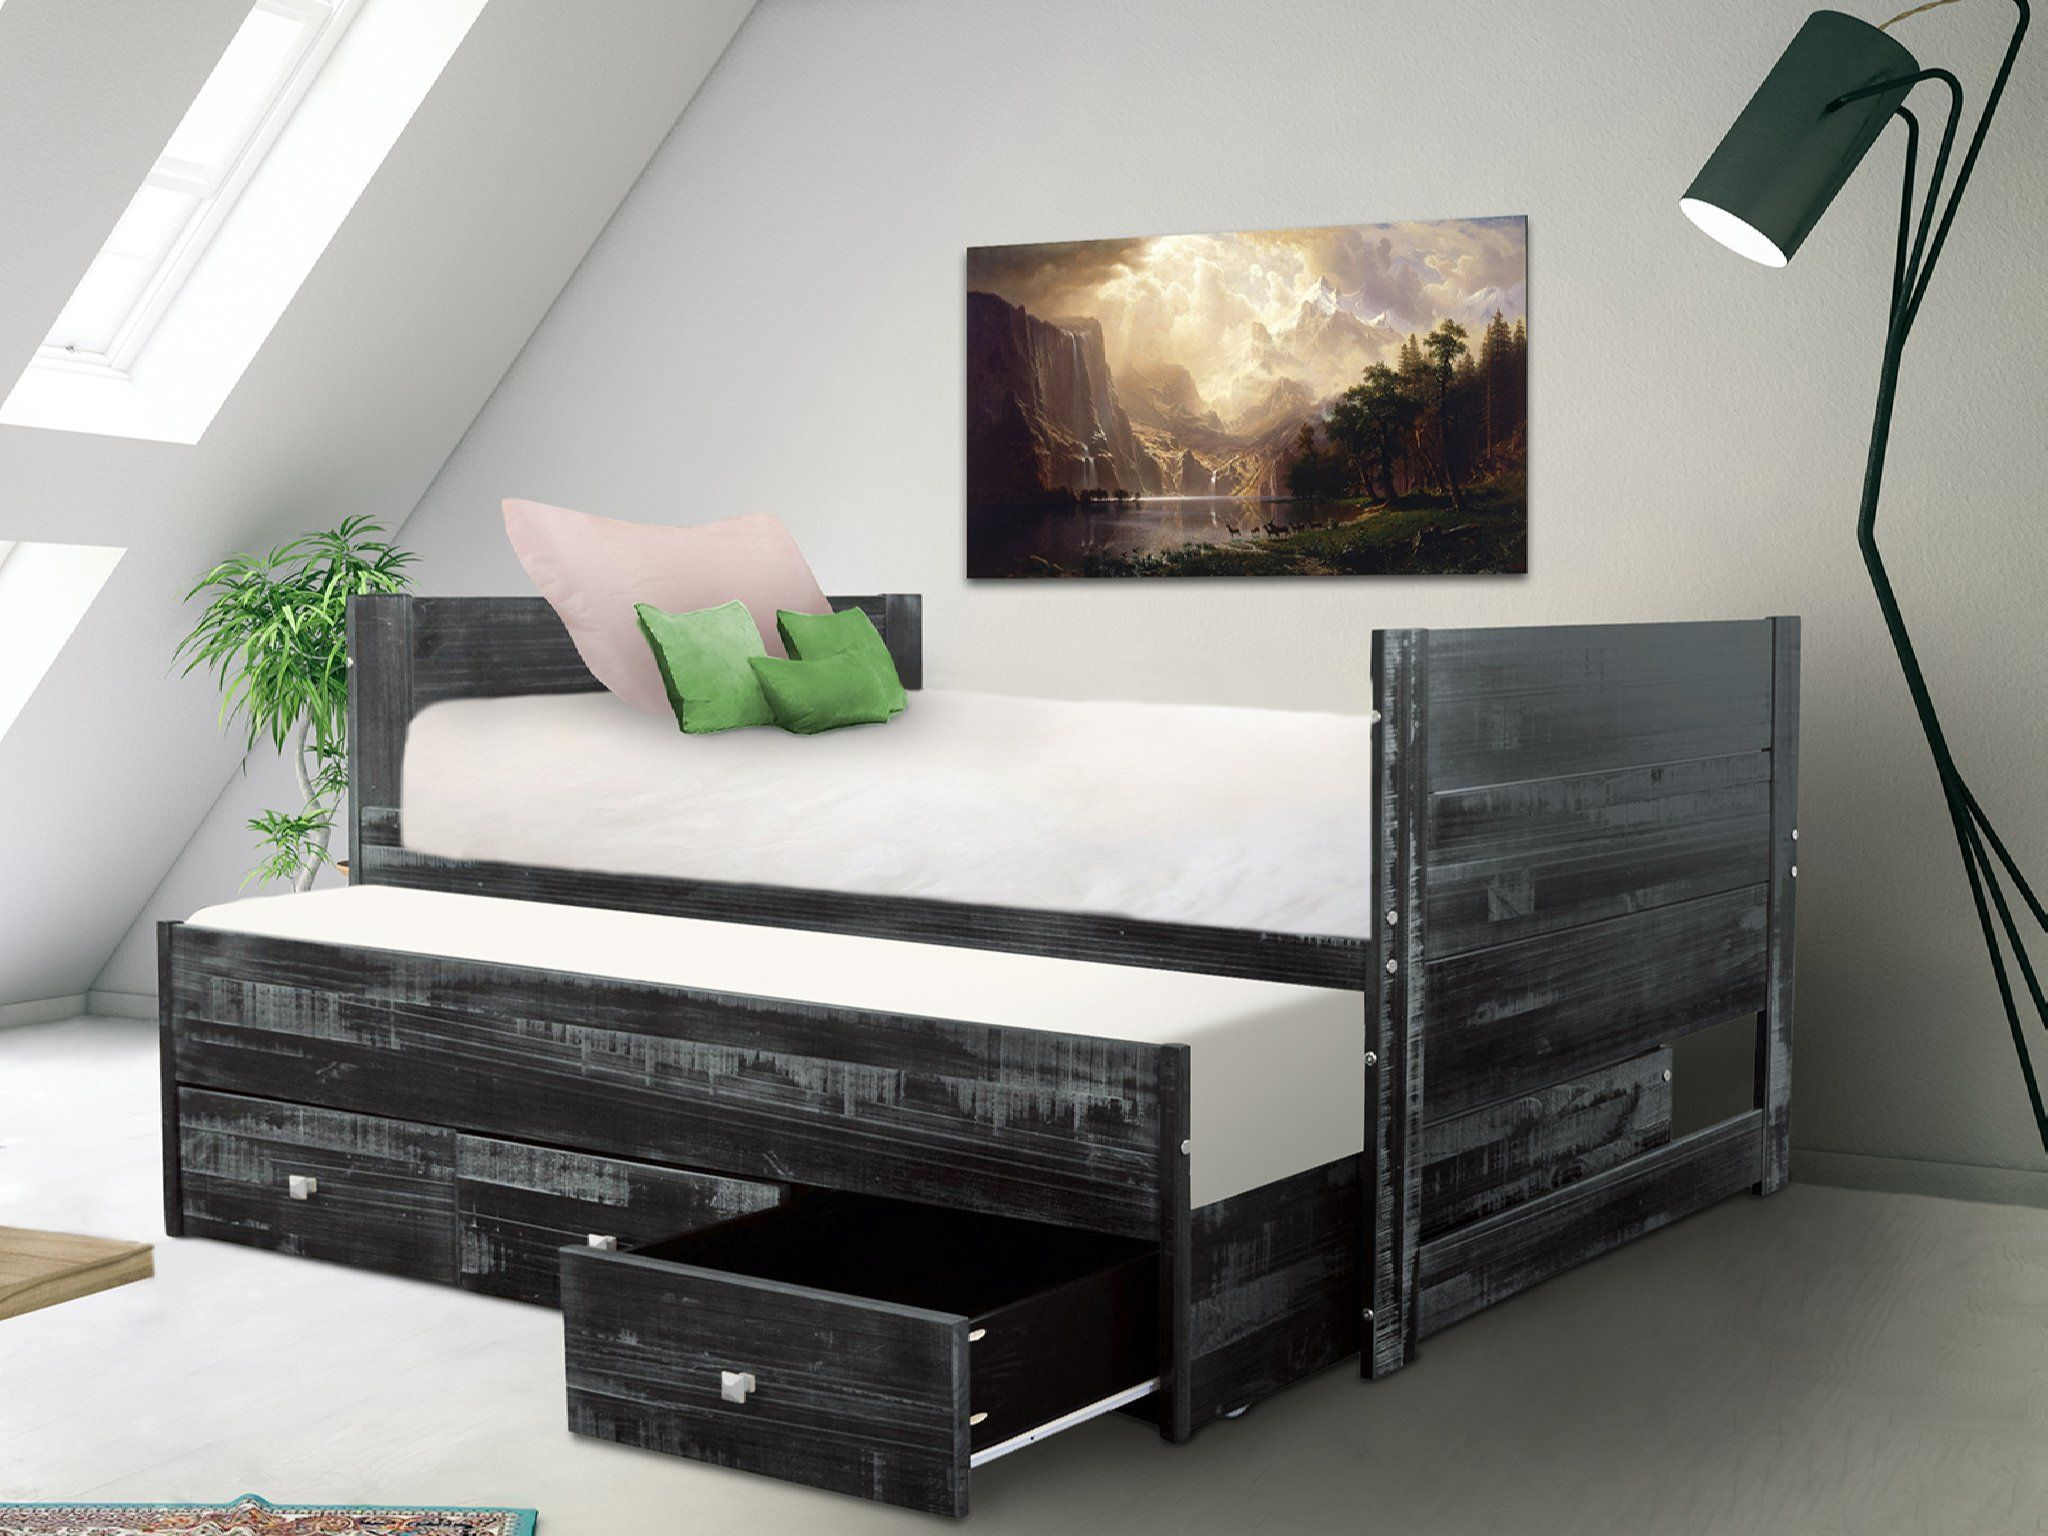 Bedz King All In One Twin Bed With, La Salle Twin Captain S Bed With Trundle And Storage Drawers White